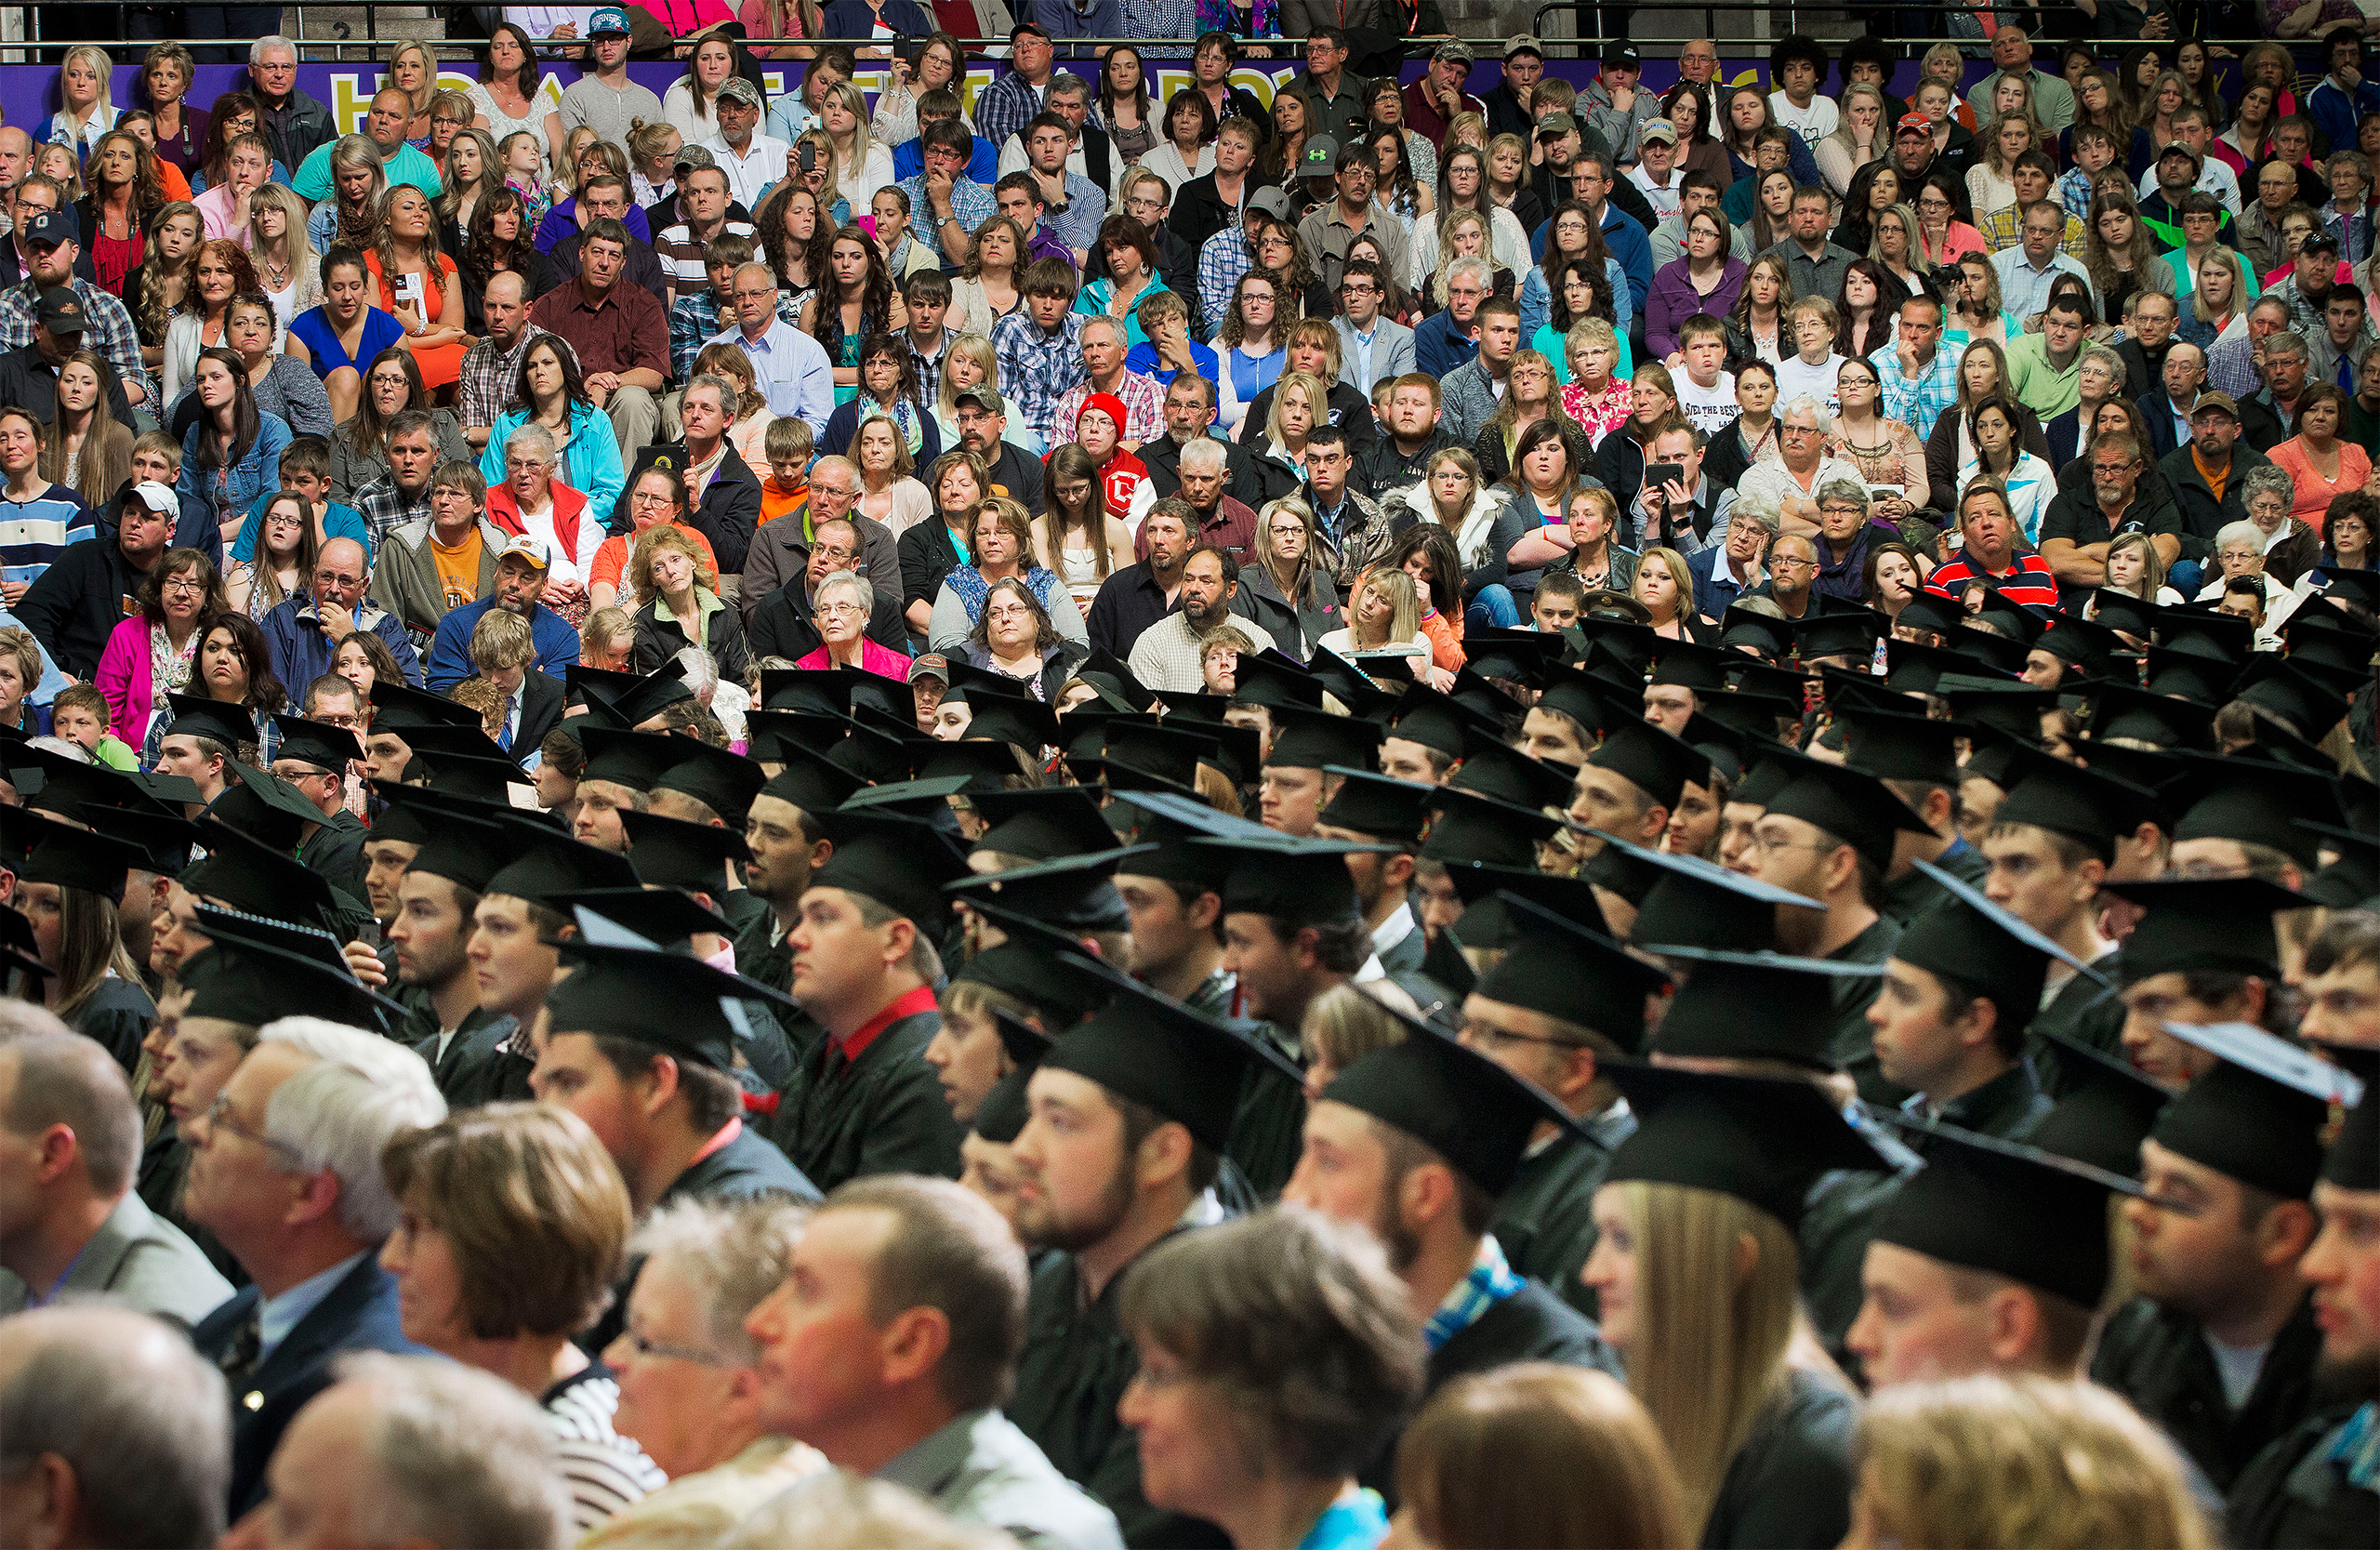 Graduates, faculty and guest in the audience listen to President Barack Obama deliver the commencement address at Lake Area Technical Institute, Friday, May 8, 2015 in Watertown, SD.